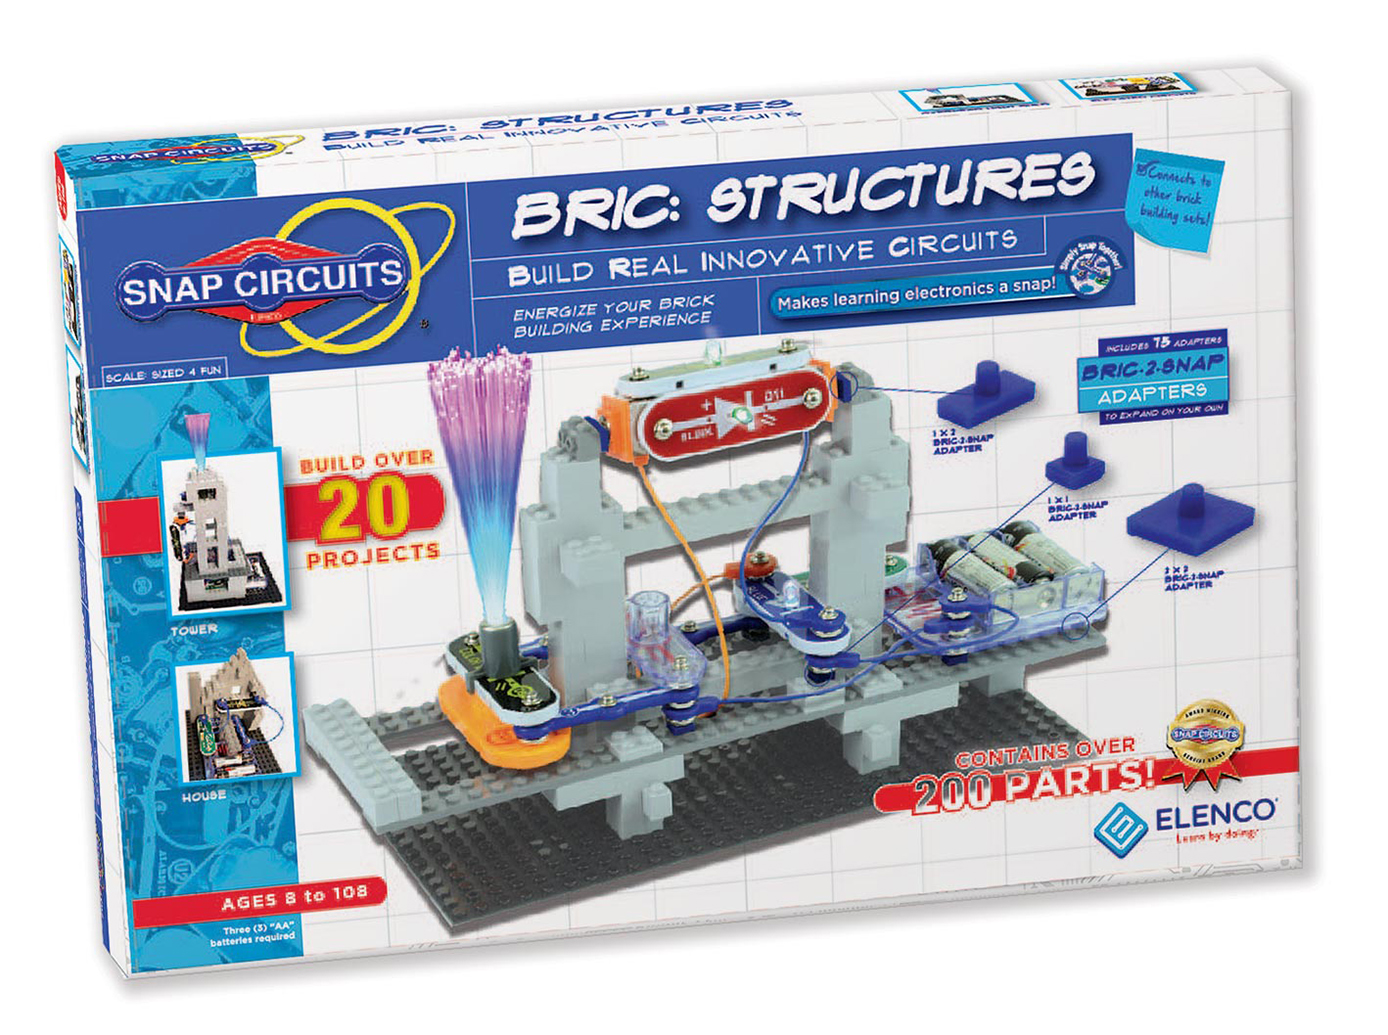 Elenco Snap Circuits Bric: Structures